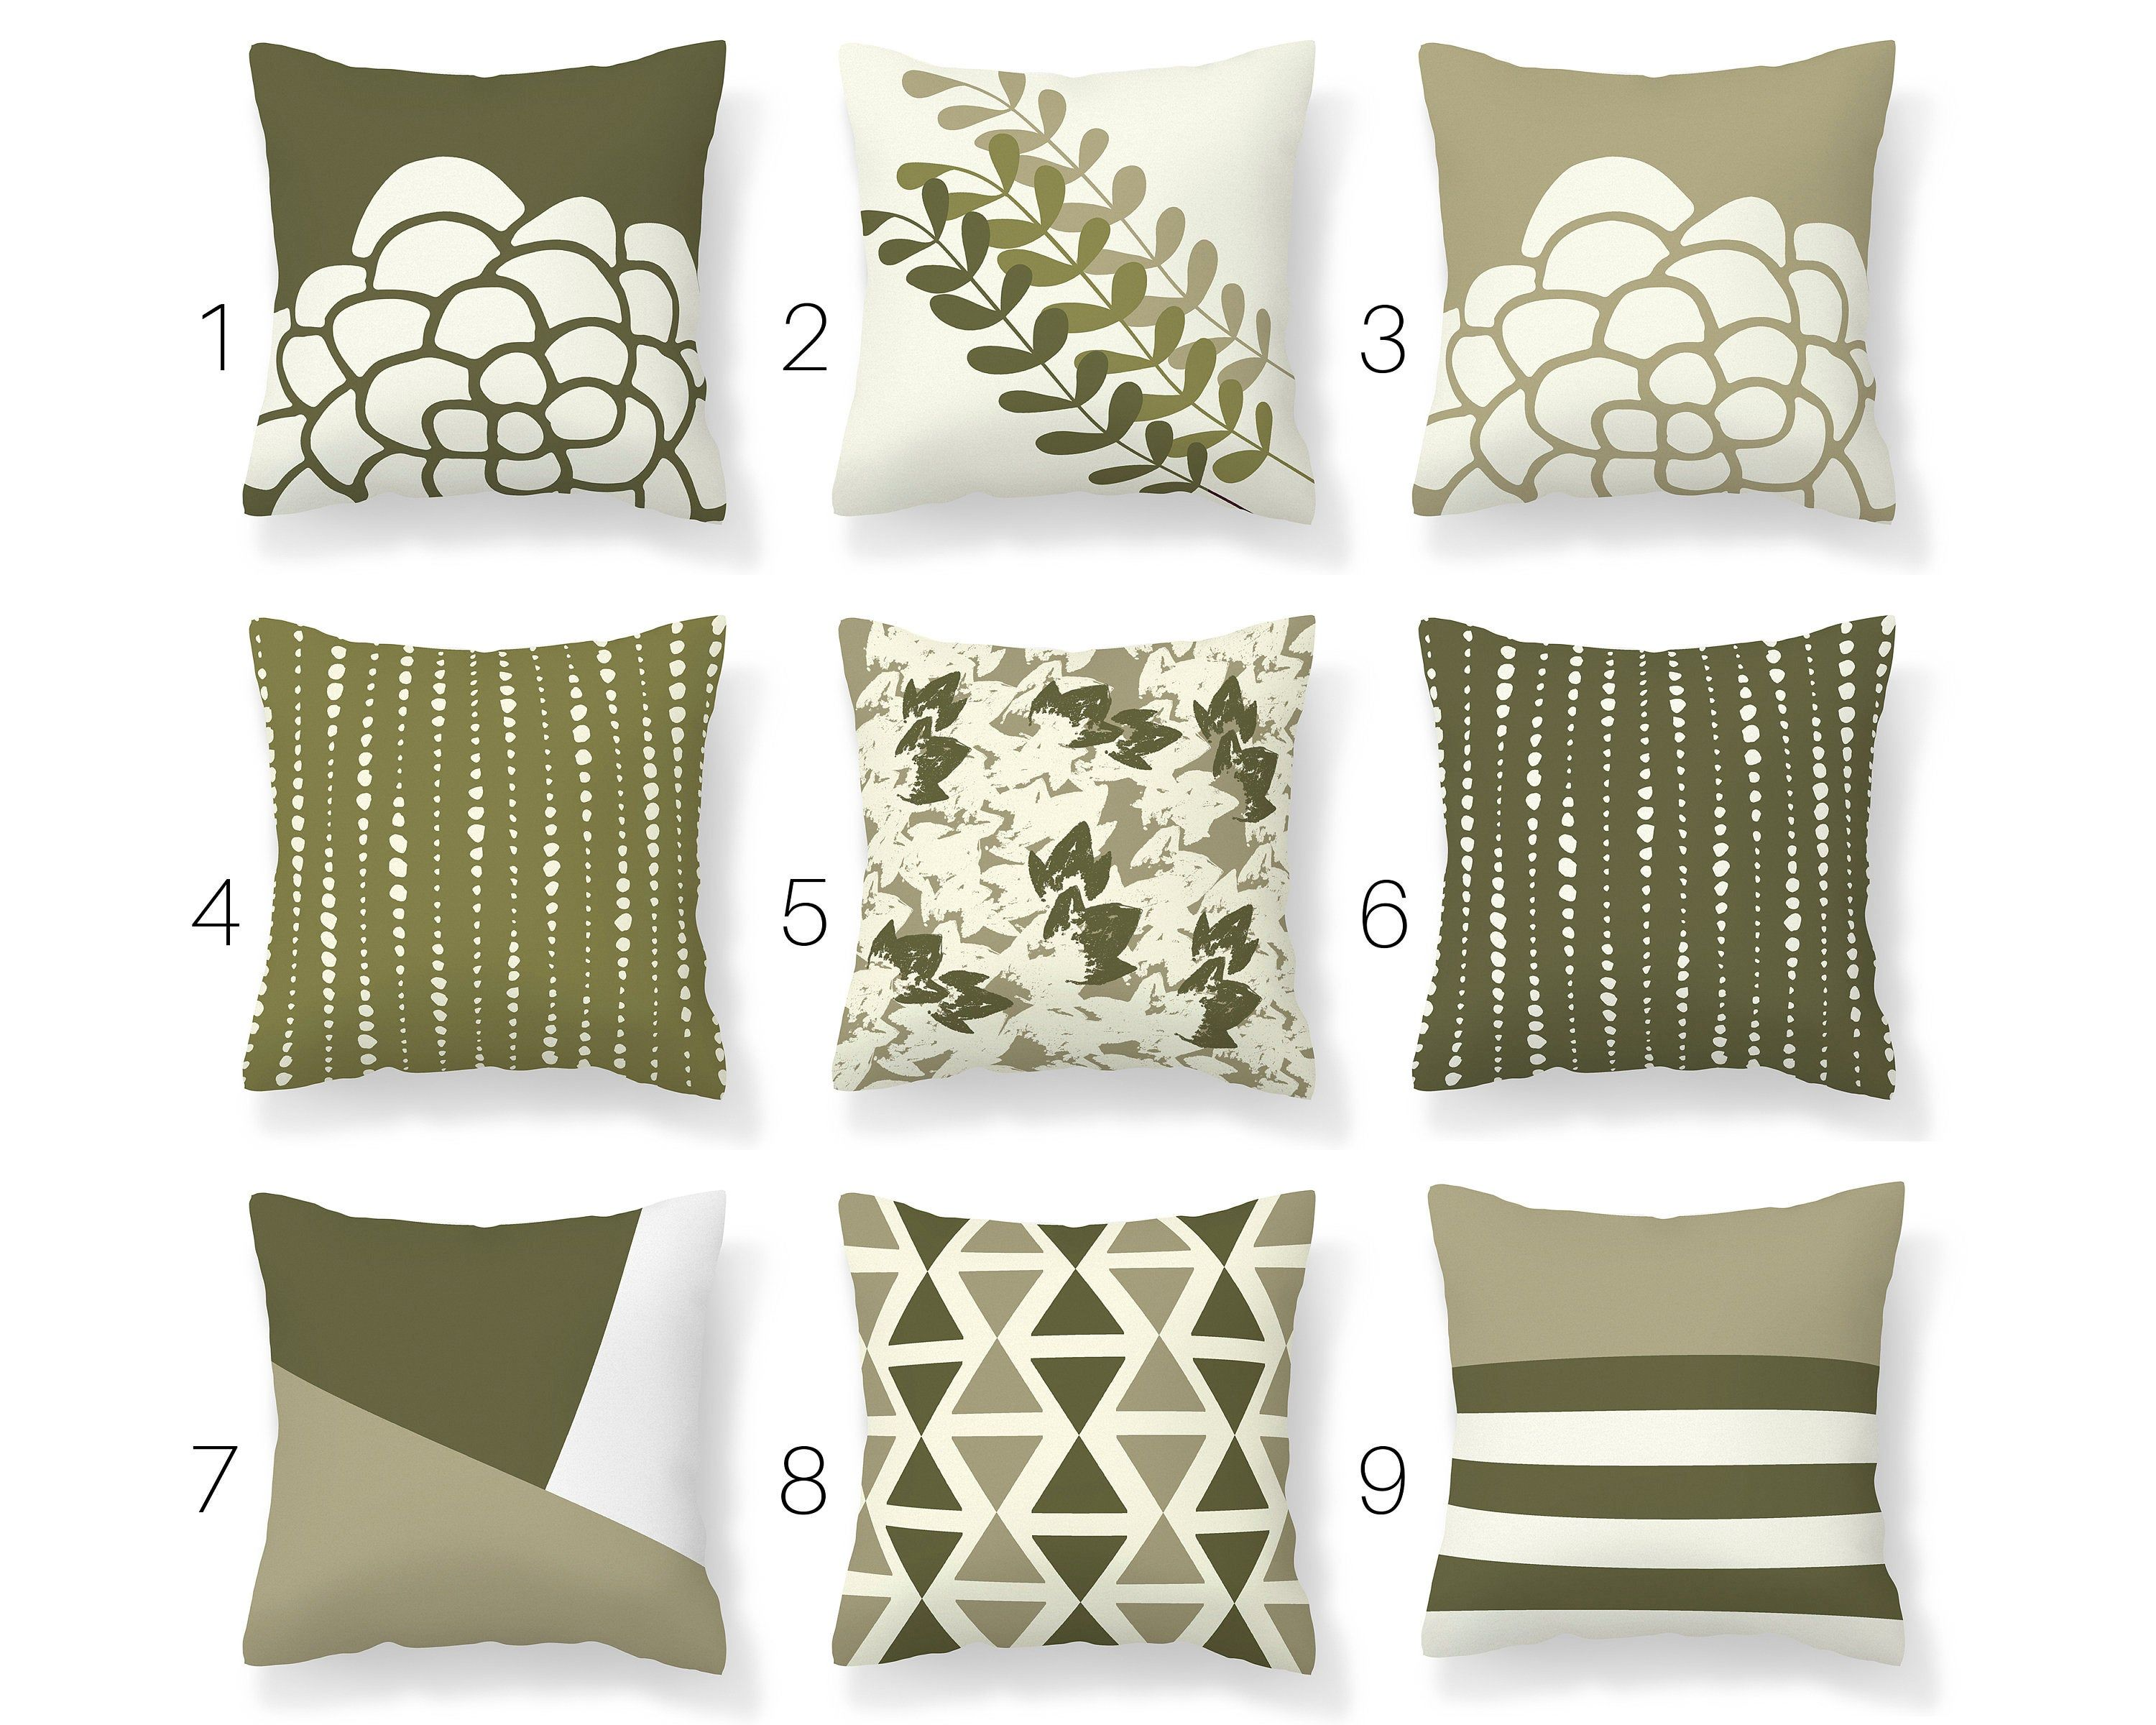 Olive Green Throw Pillow Cover Green Mix And Match Pillow Etsy In 2020 Green Throw Pillows Throw Pillows Throw Pillow Covers